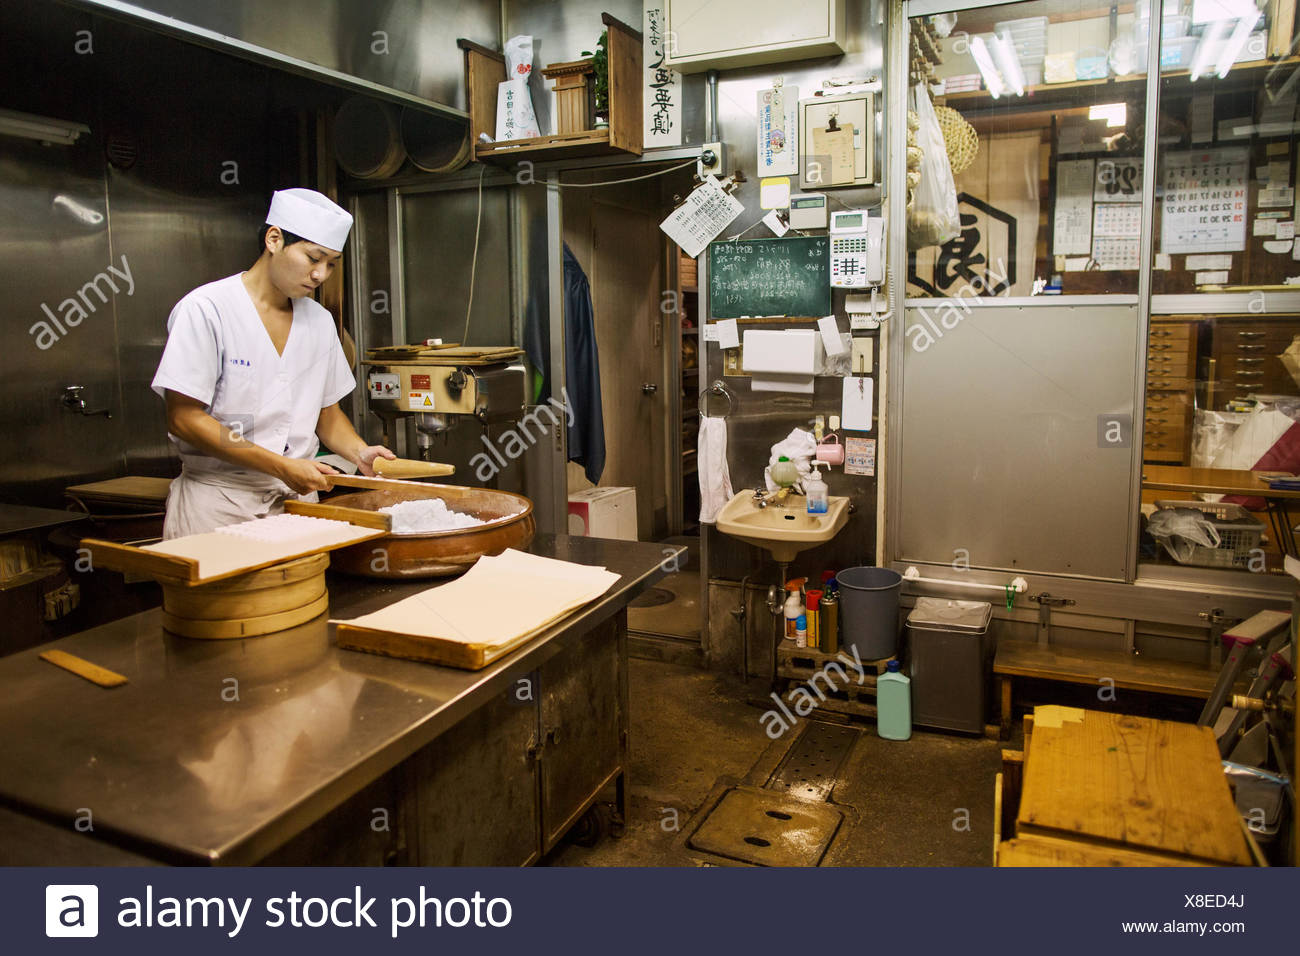 A small artisan producer of wagashi. A man mixing a large bowl of ingredients and pressing the mixed dough into moulds in a commercial kitchen. - Stock Image